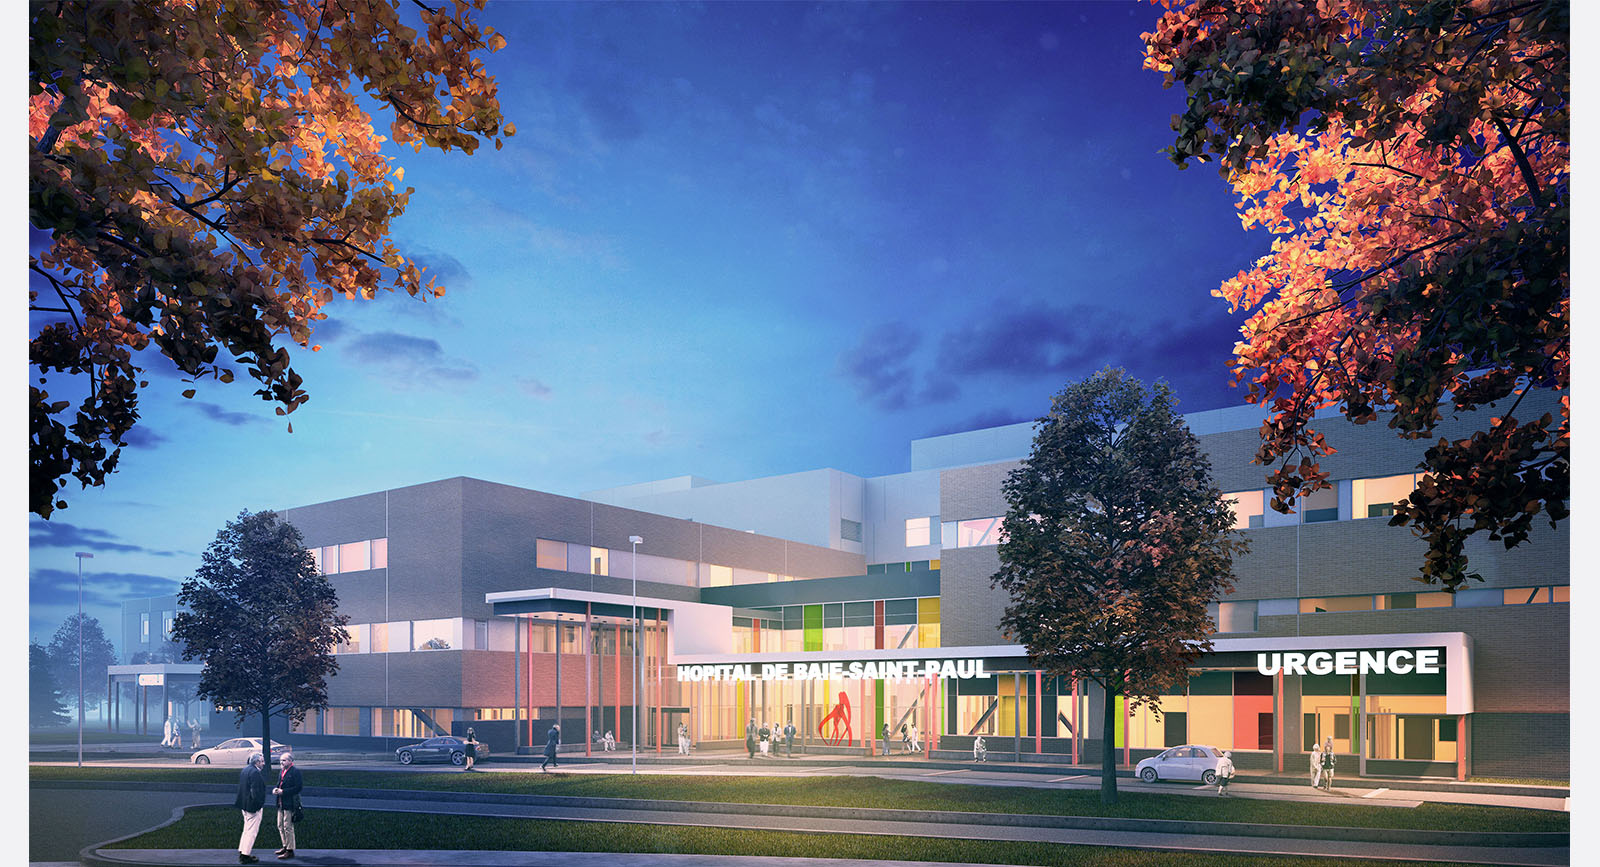 Baie-St-Paul New Hospital - Call for proposals